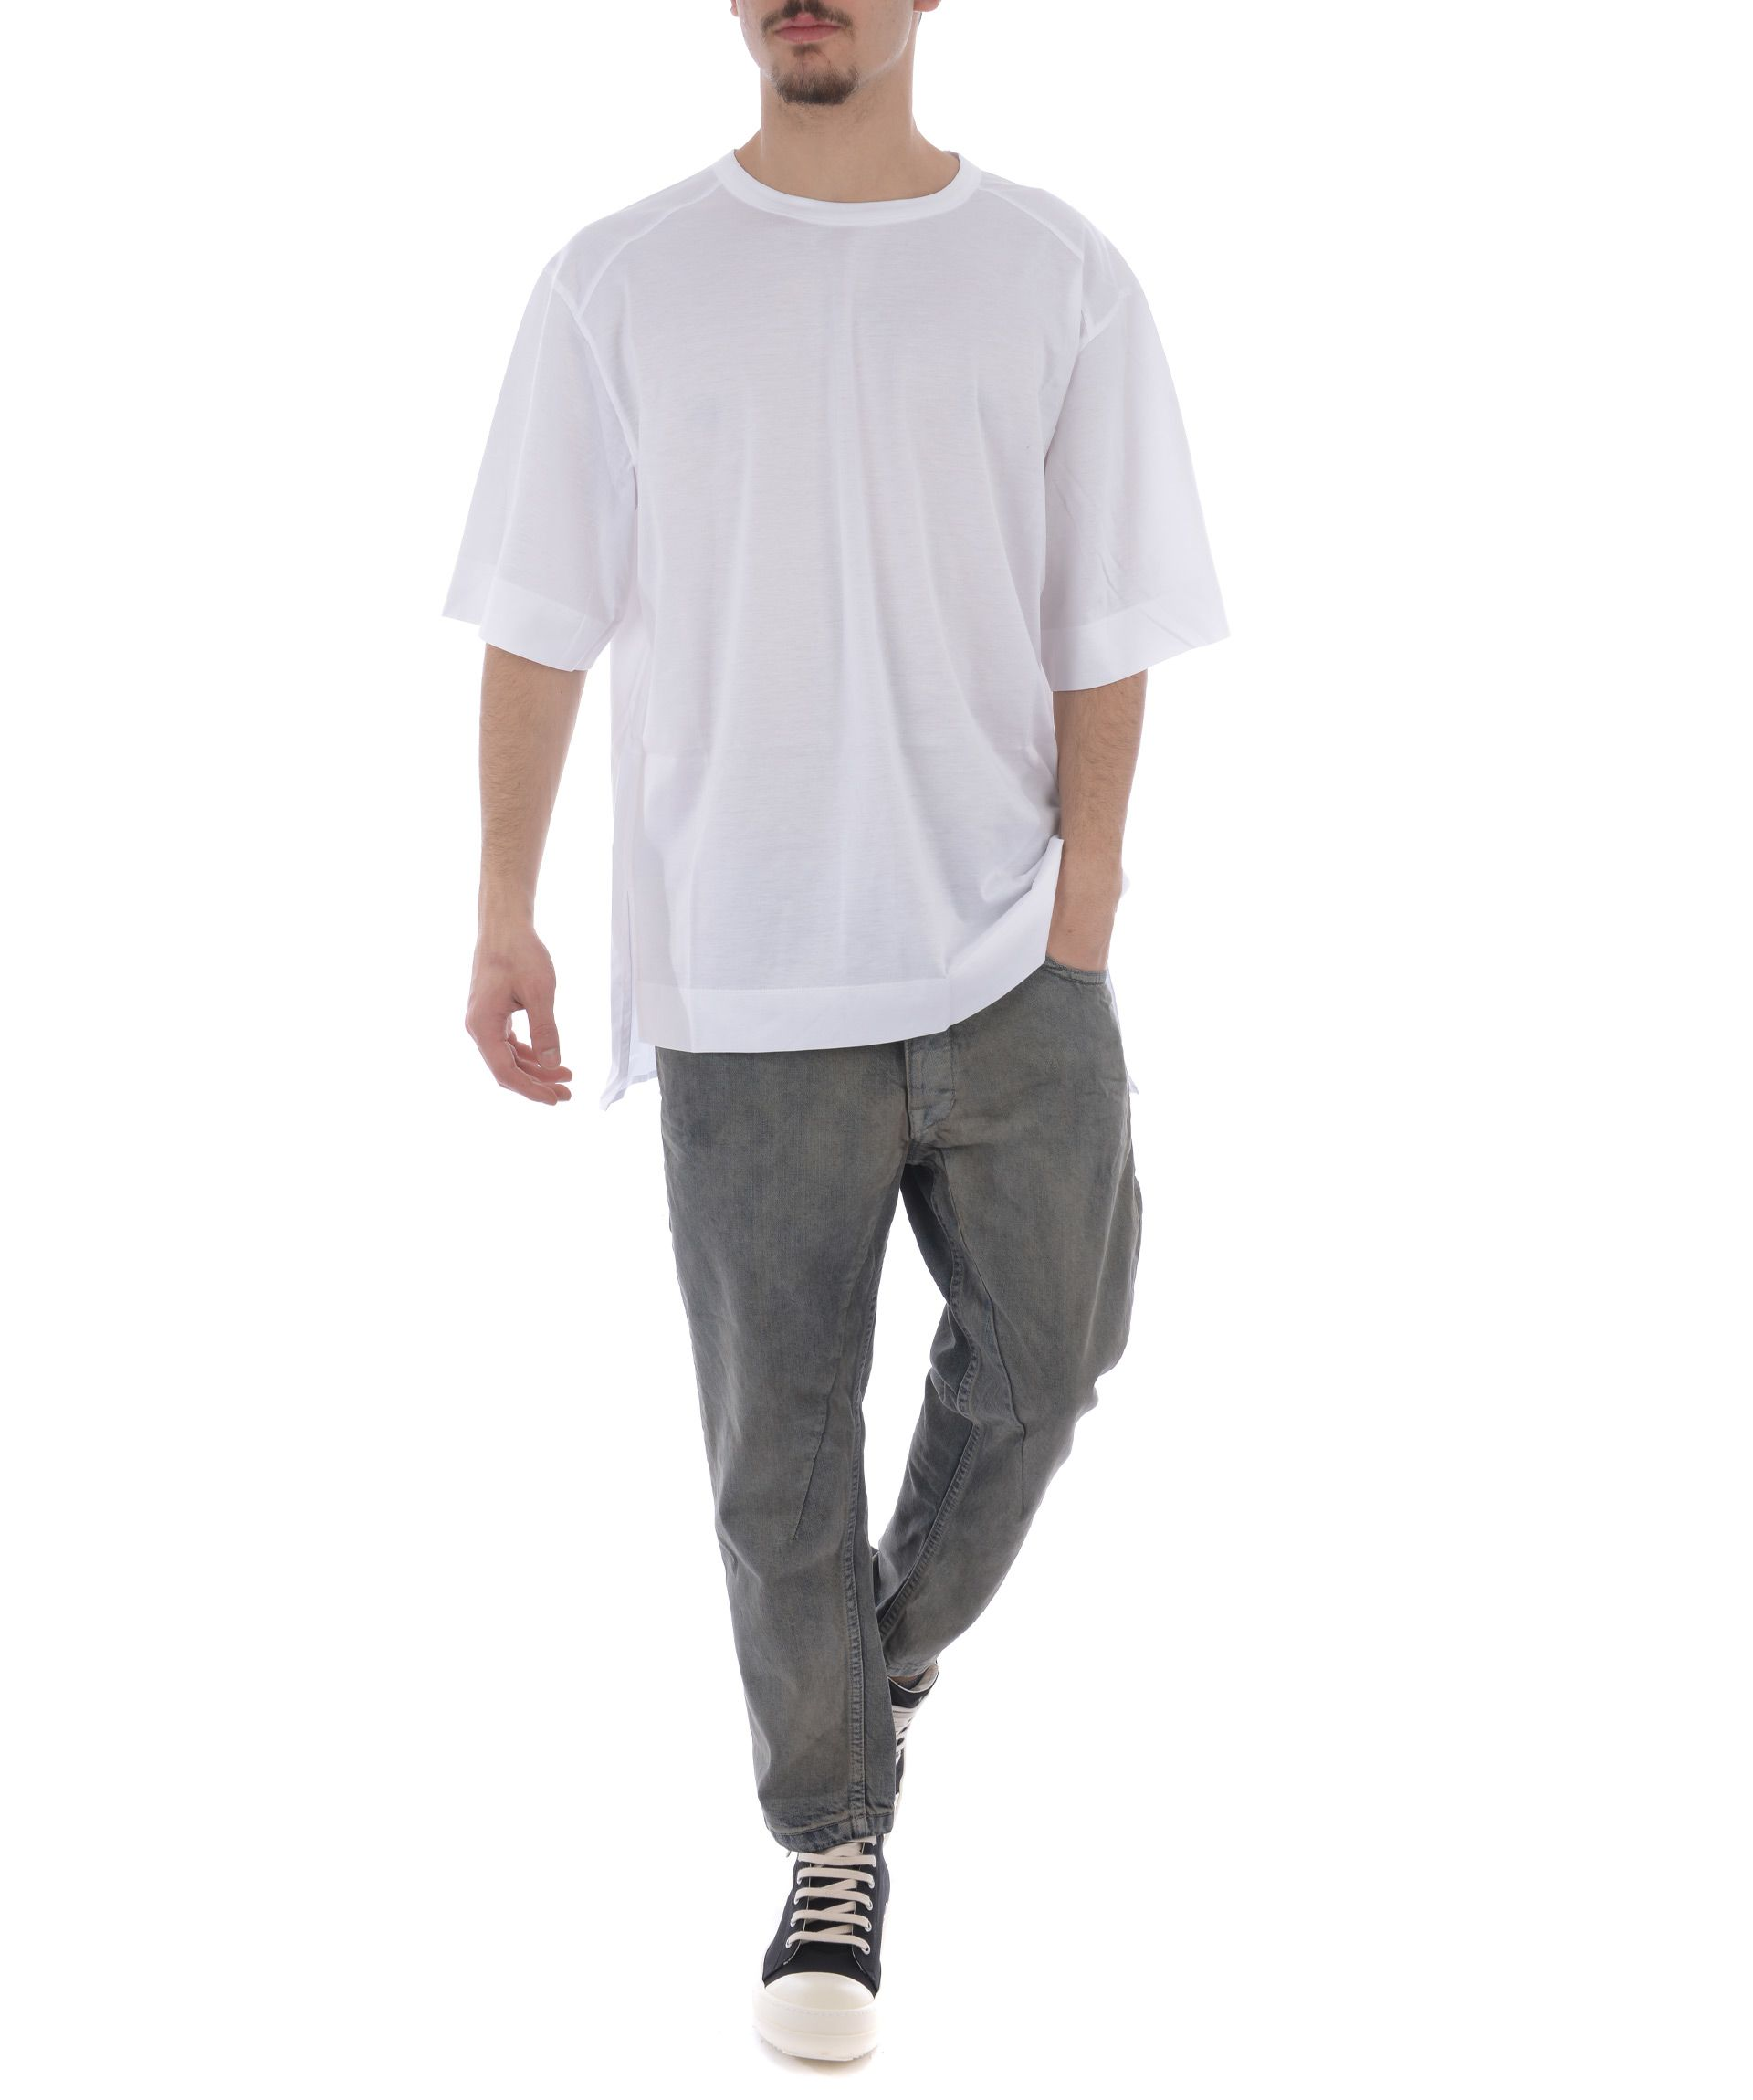 Juun.j Loose-fit T-shirt